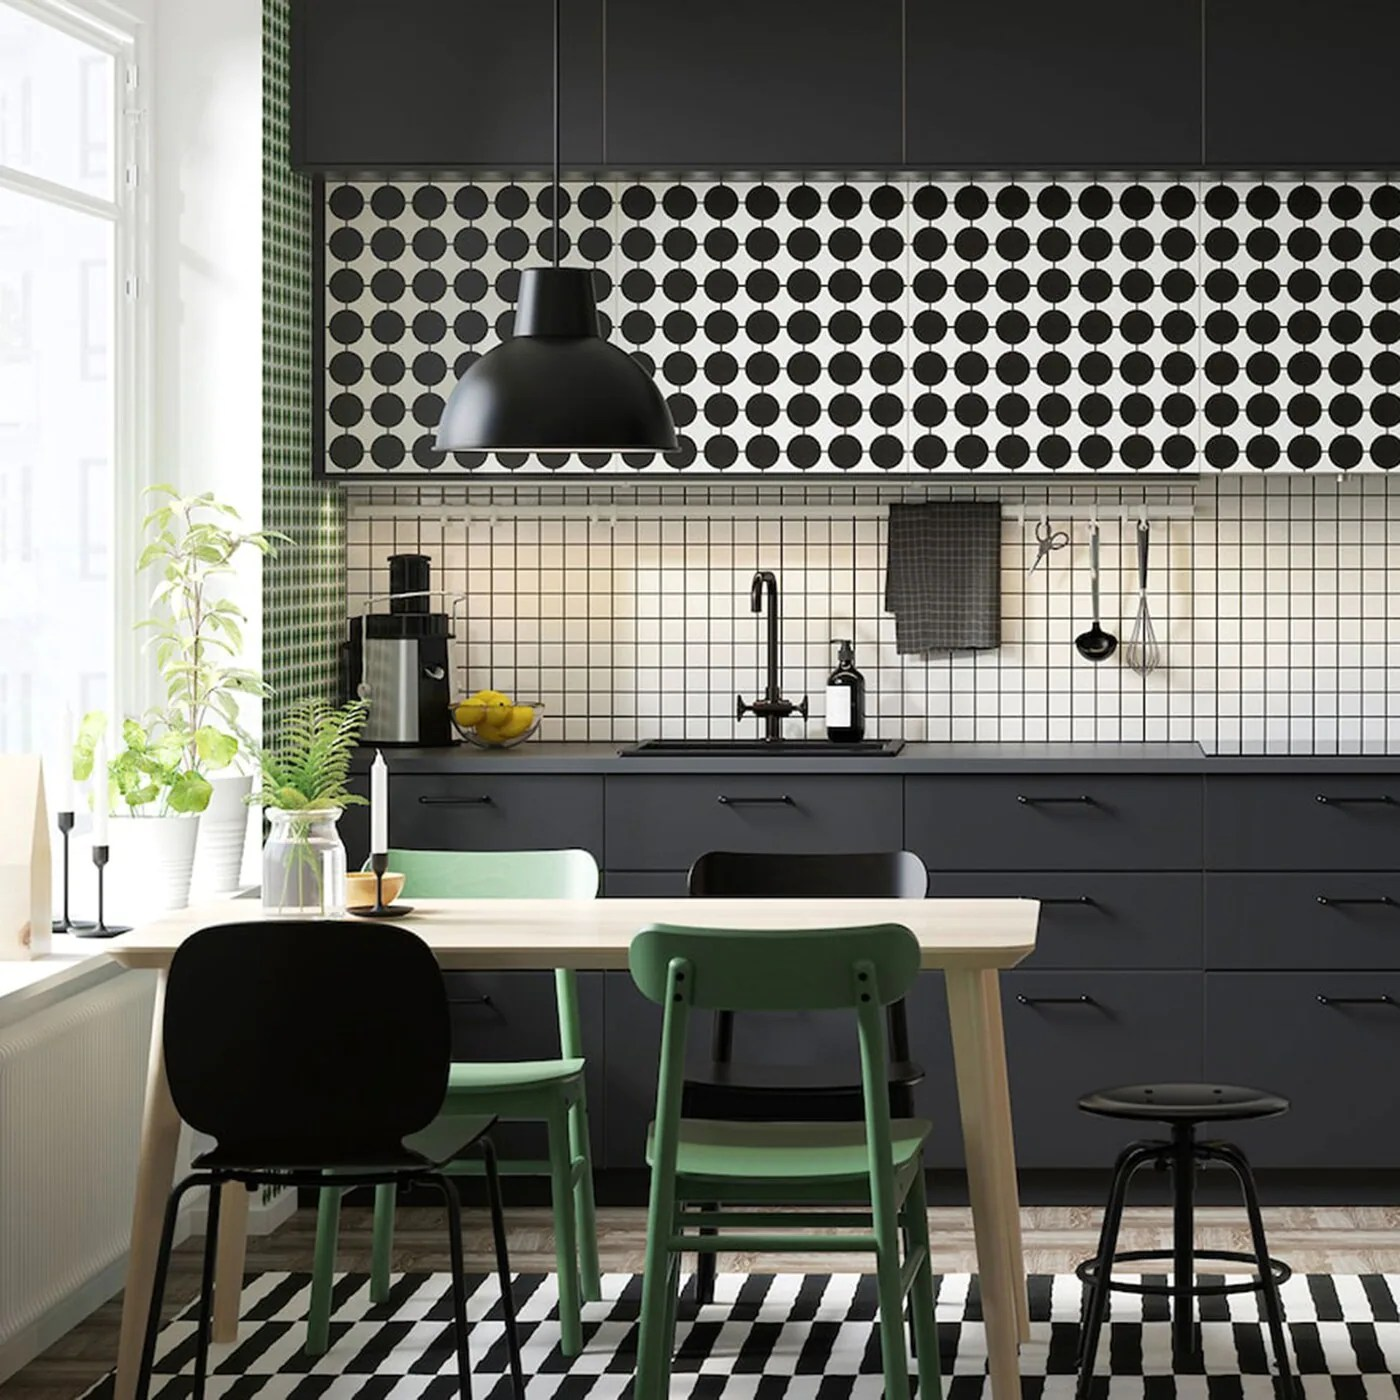 Ikea Kitchen Design Visit Kitchen Design Storage Inspiration Kitchen Ideas Ikea